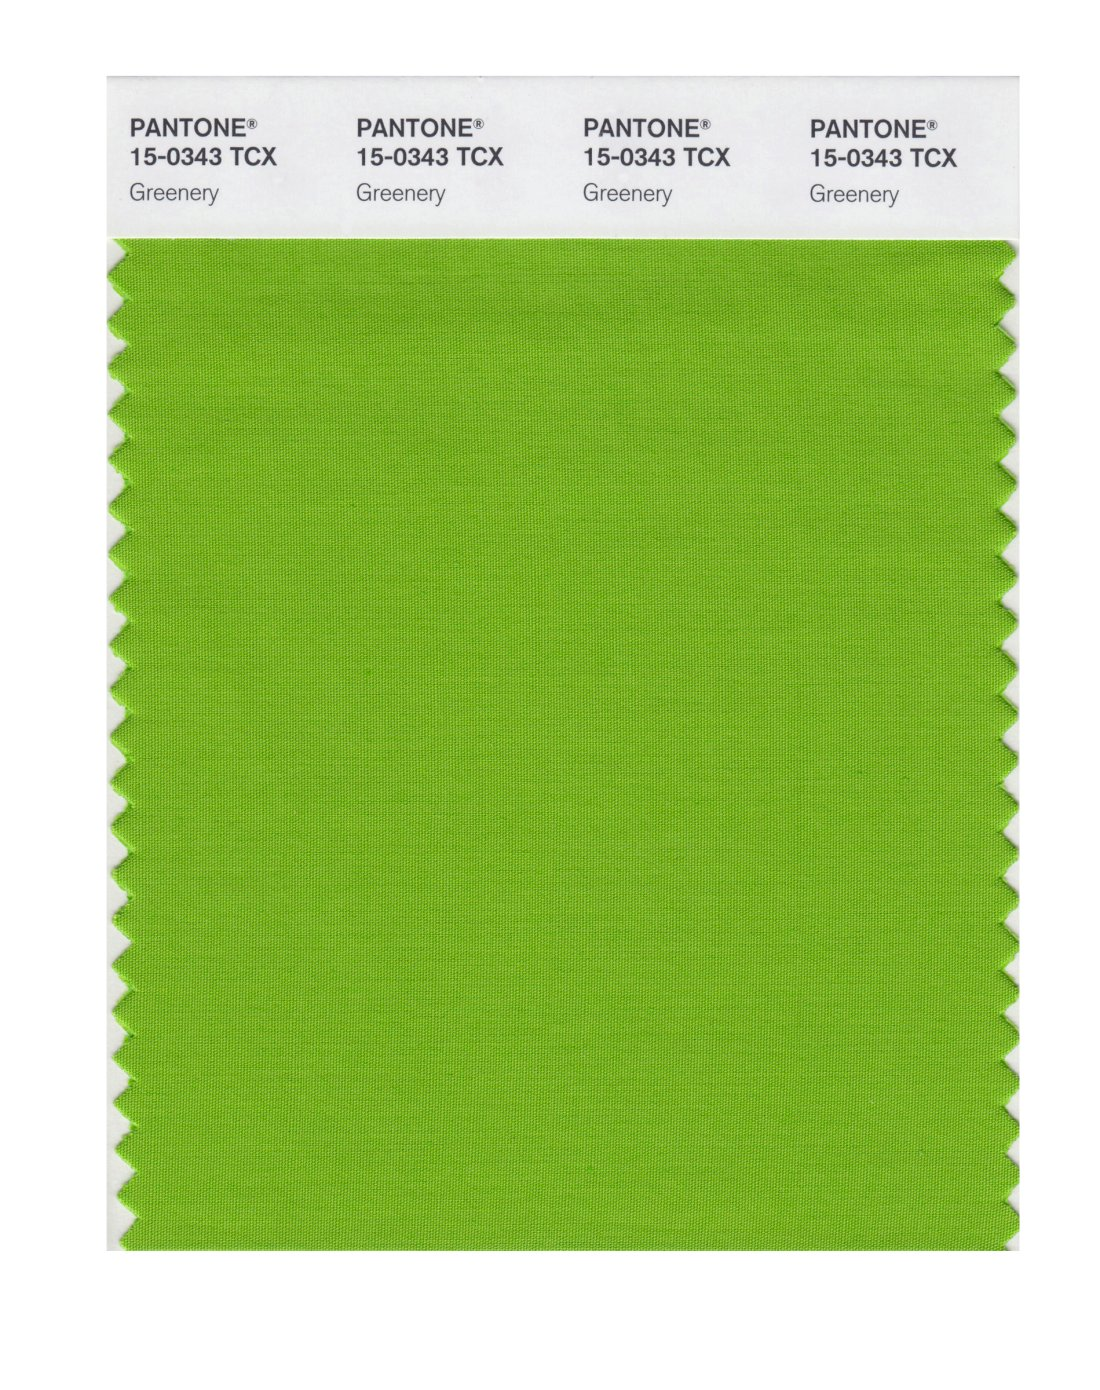 Pantone's Color of the Year 2017